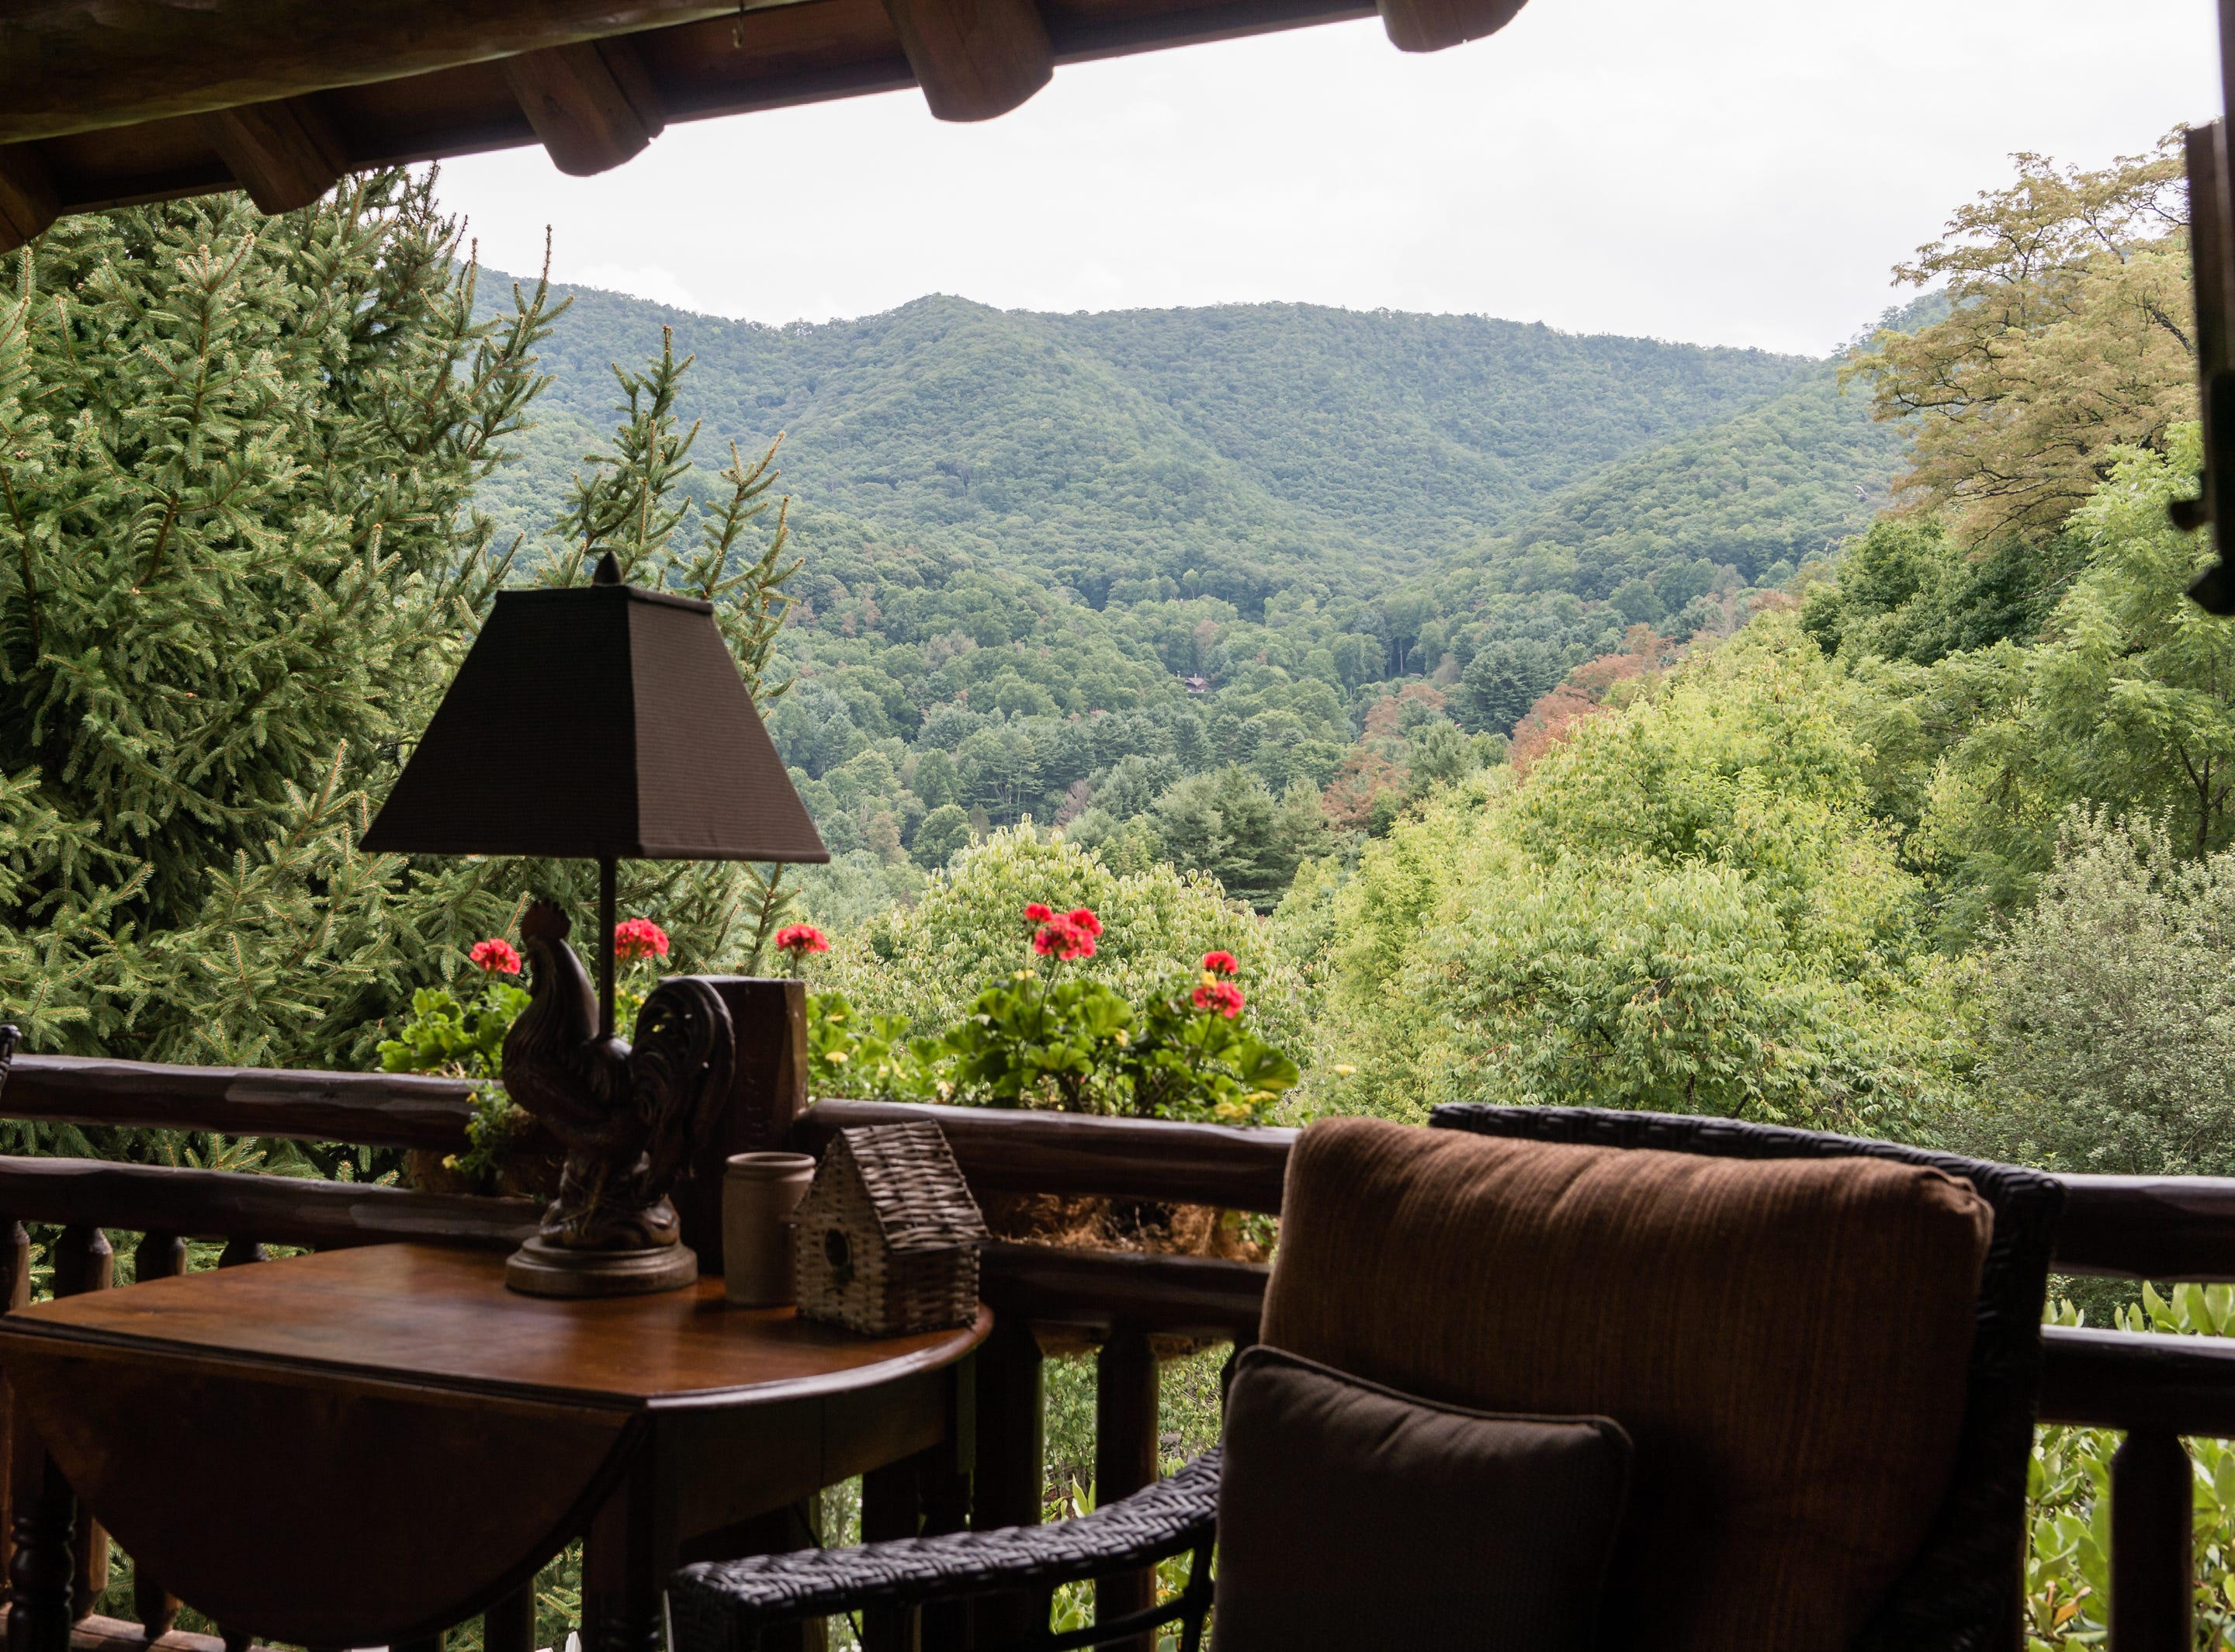 The view from a side porch of Dan and Belle Fangmeyer's log cabin in Waynesville.